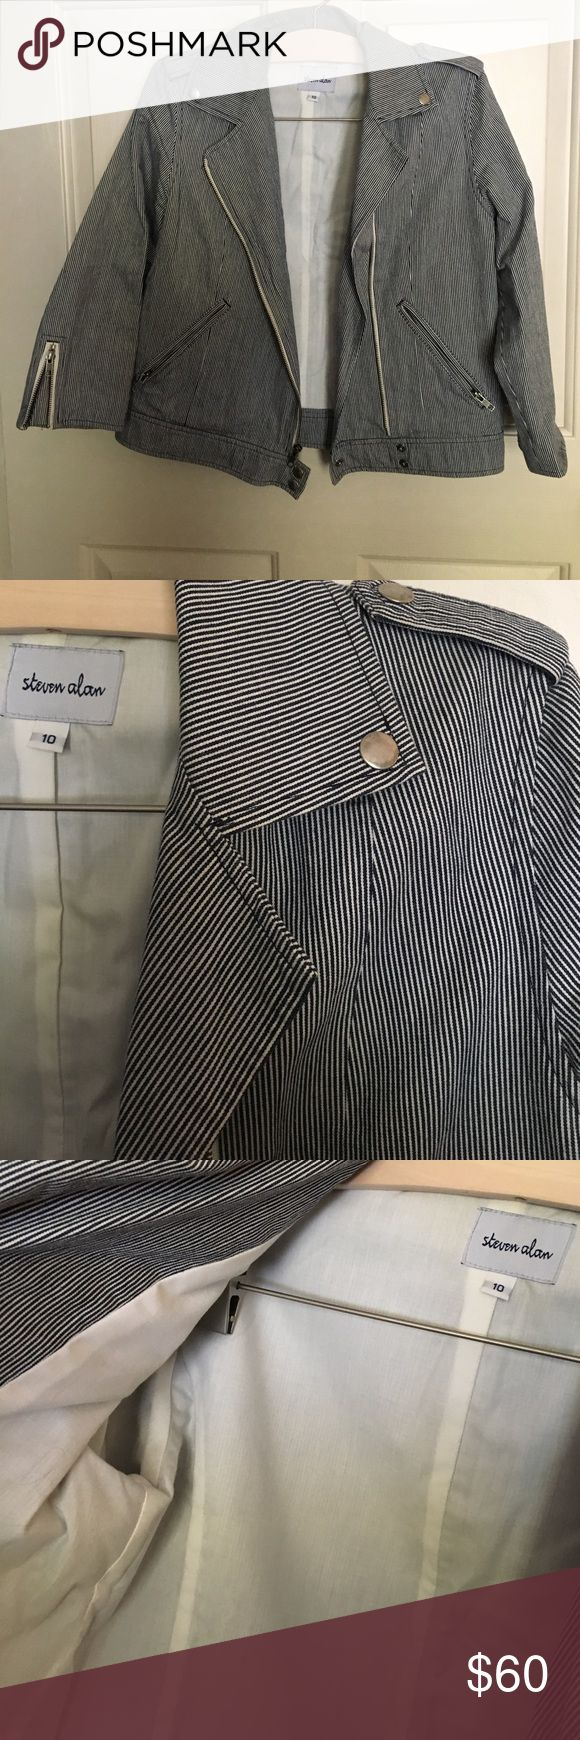 Seersucker Jacket 3/4 length sleeves and in great condition. Dry clean only. Perfect finishing touch to any weekend look! Steven Alan Jackets & Coats